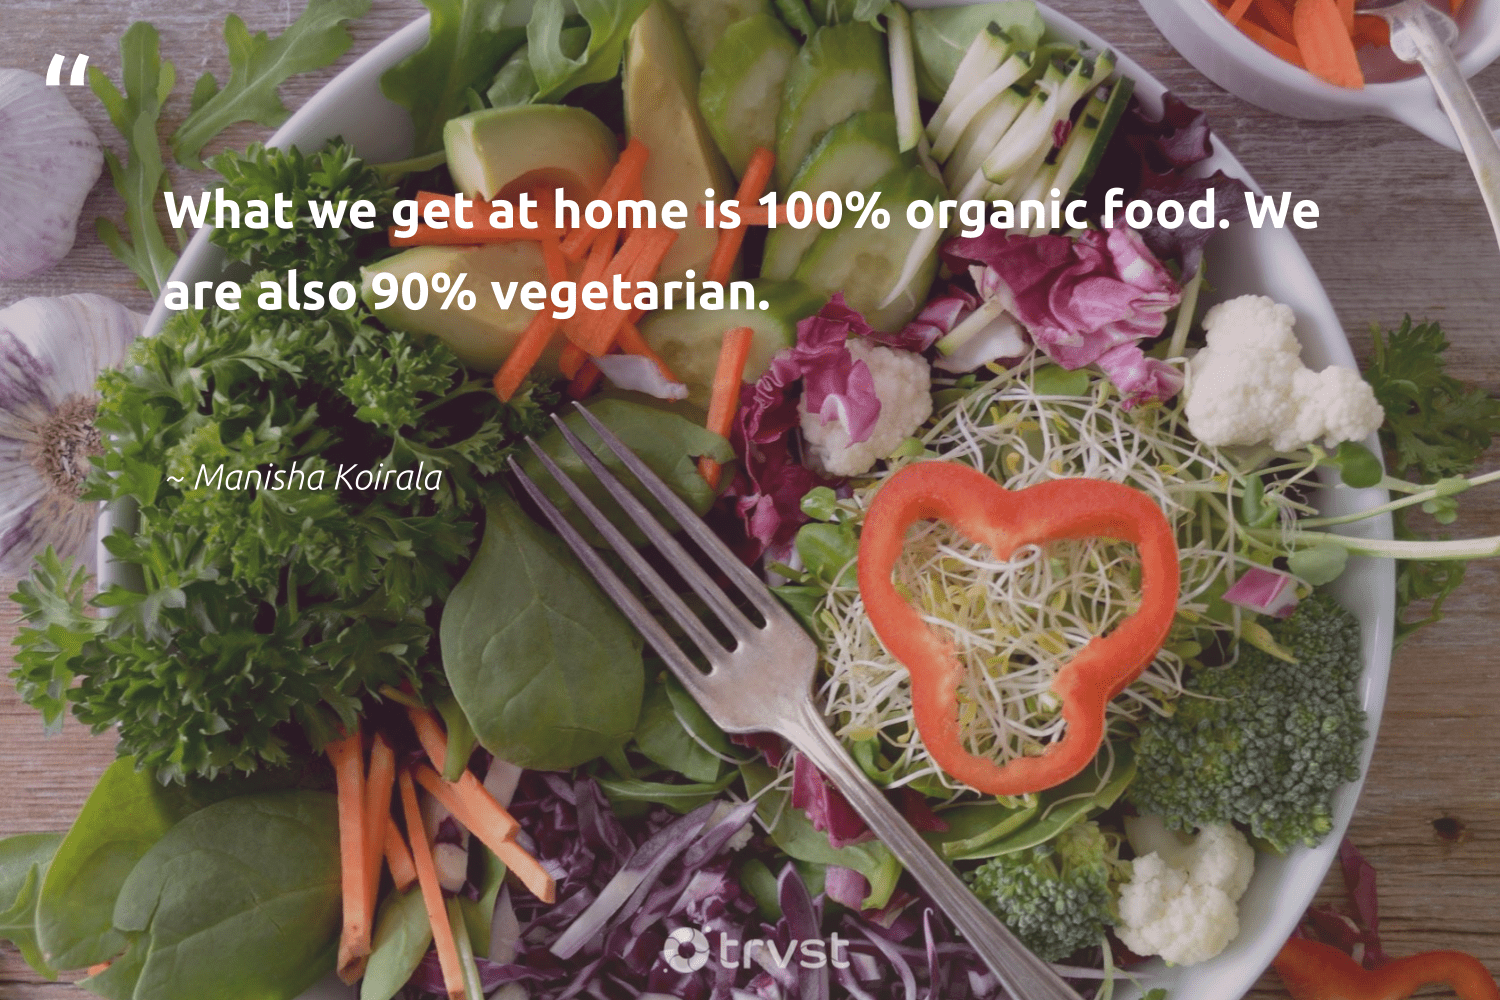 """""""What we get at home is 100% organic food. We are also 90% vegetarian.""""  - Manisha Koirala #trvst #quotes #food #organic #vegetarian #hungry #greenliving #makeadifference #changetheworld #foodforthepoor #bethechange #equalopportunity"""